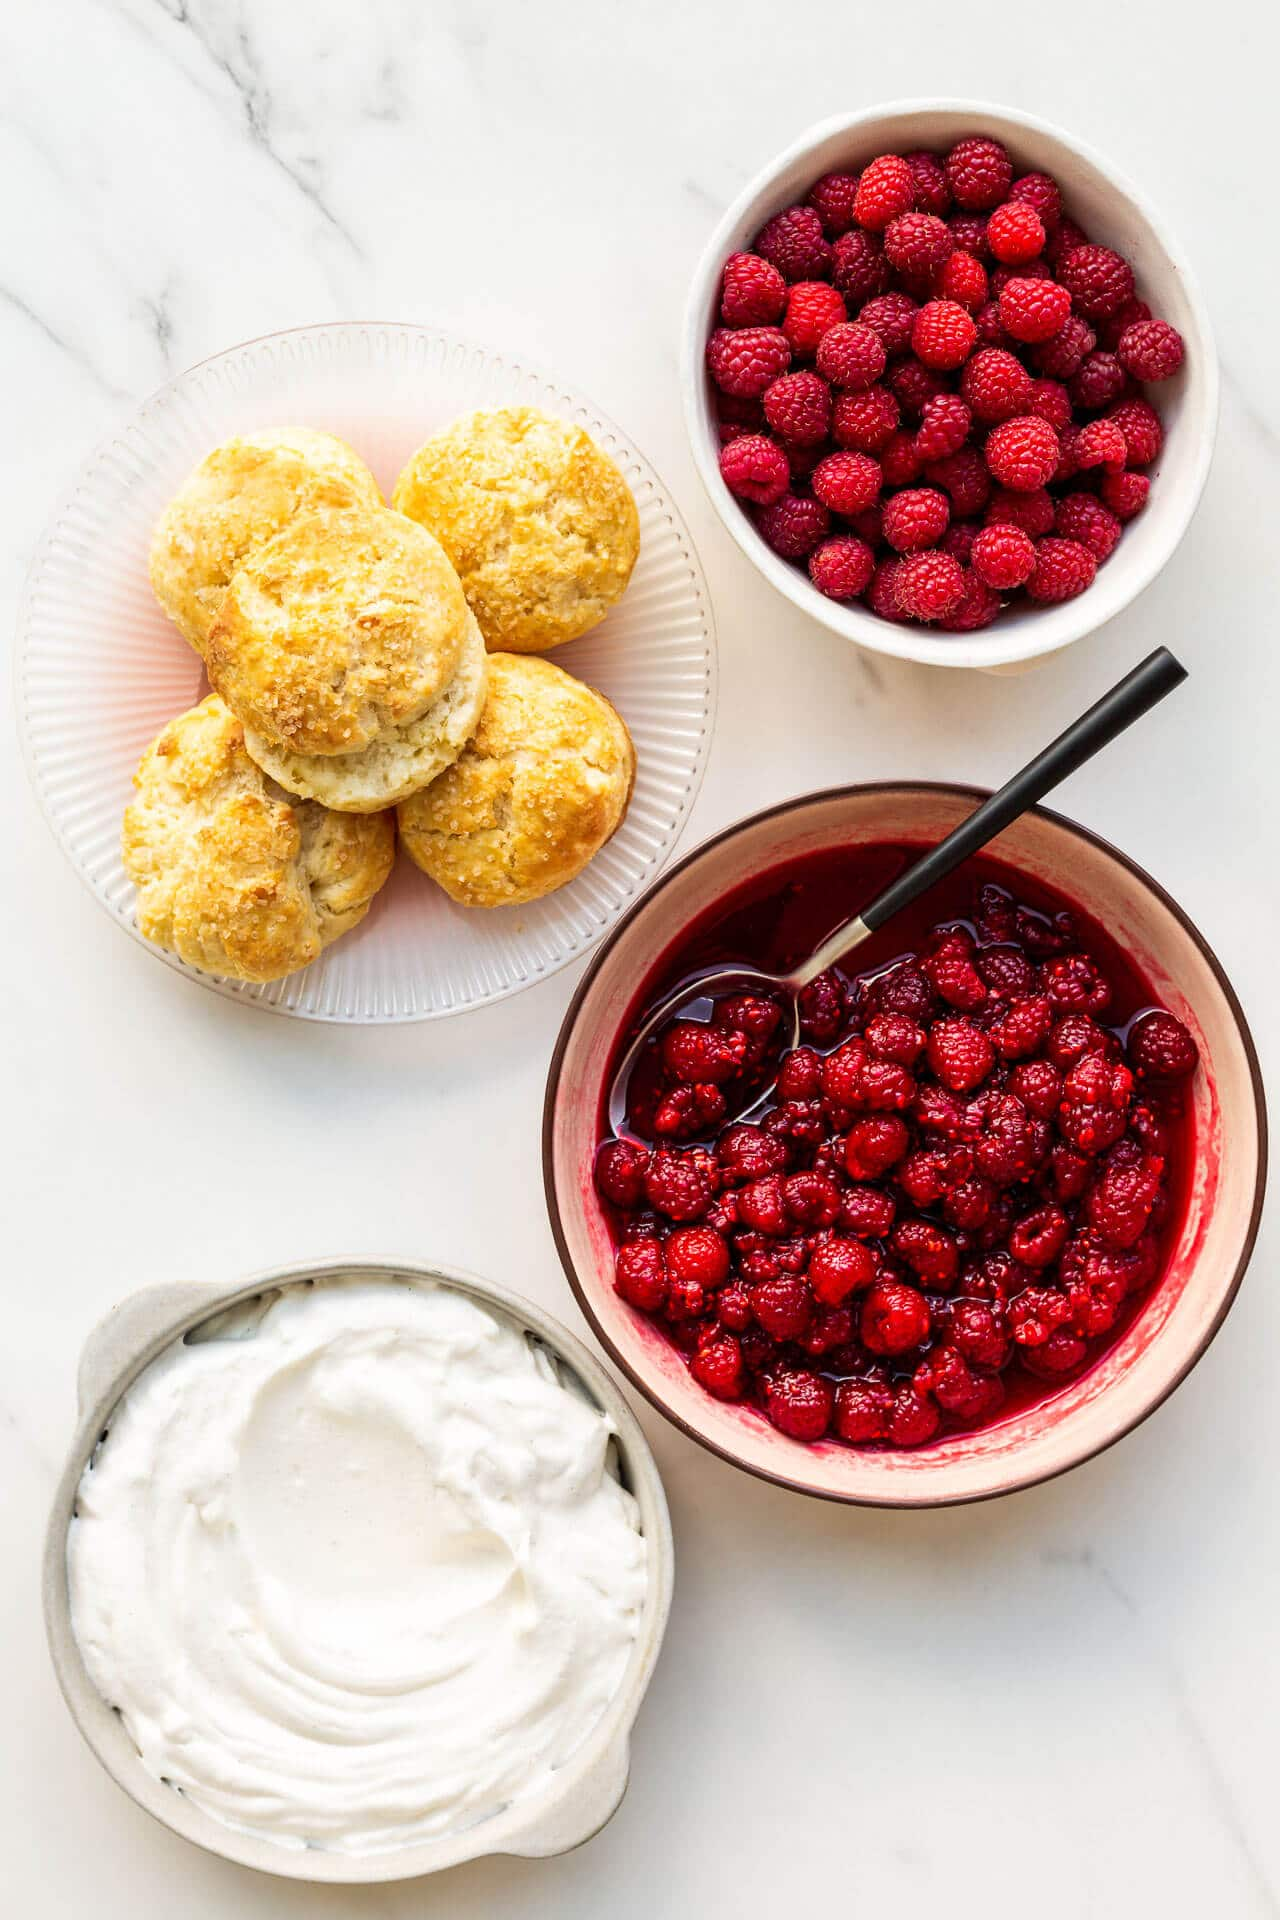 Ingredients to make raspberry shortcake are homemade biscuits, whipped cream, and macerated raspberries